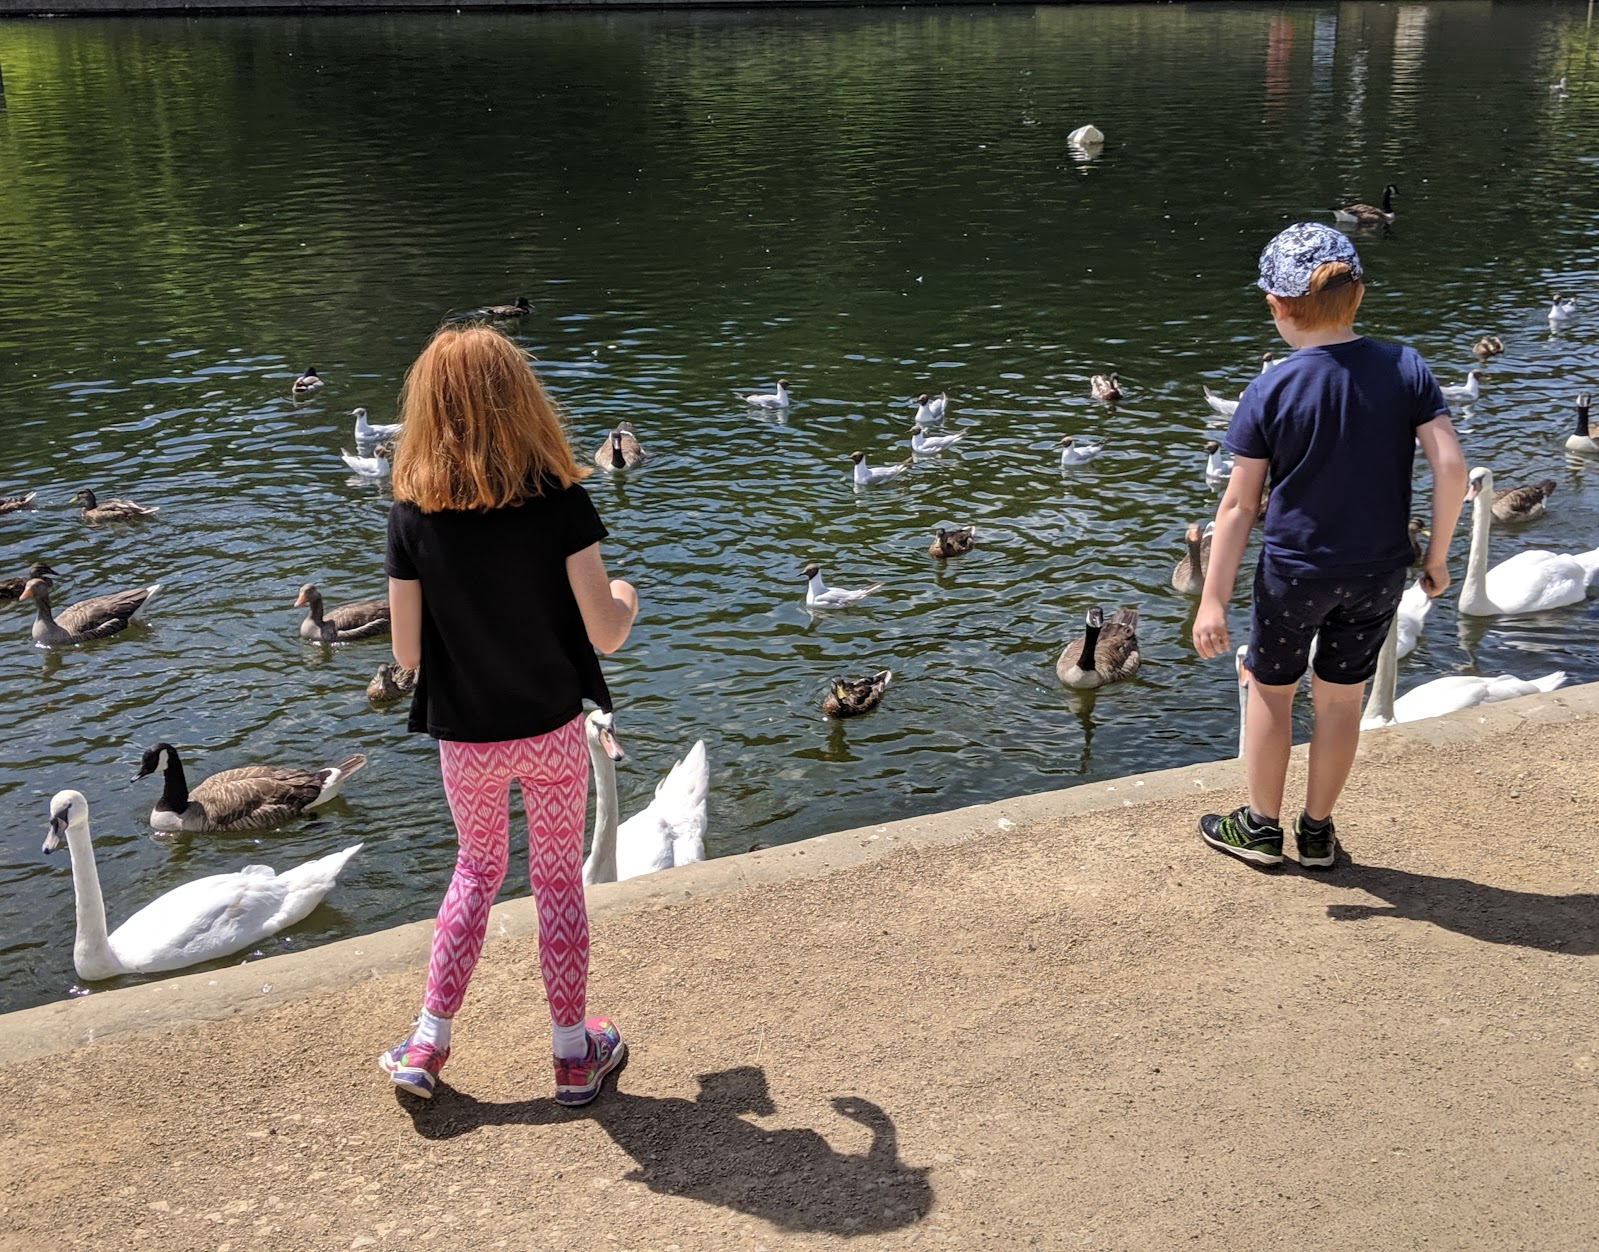 A Short Break in Leeds with Holidays by National Express  - feeding the swans